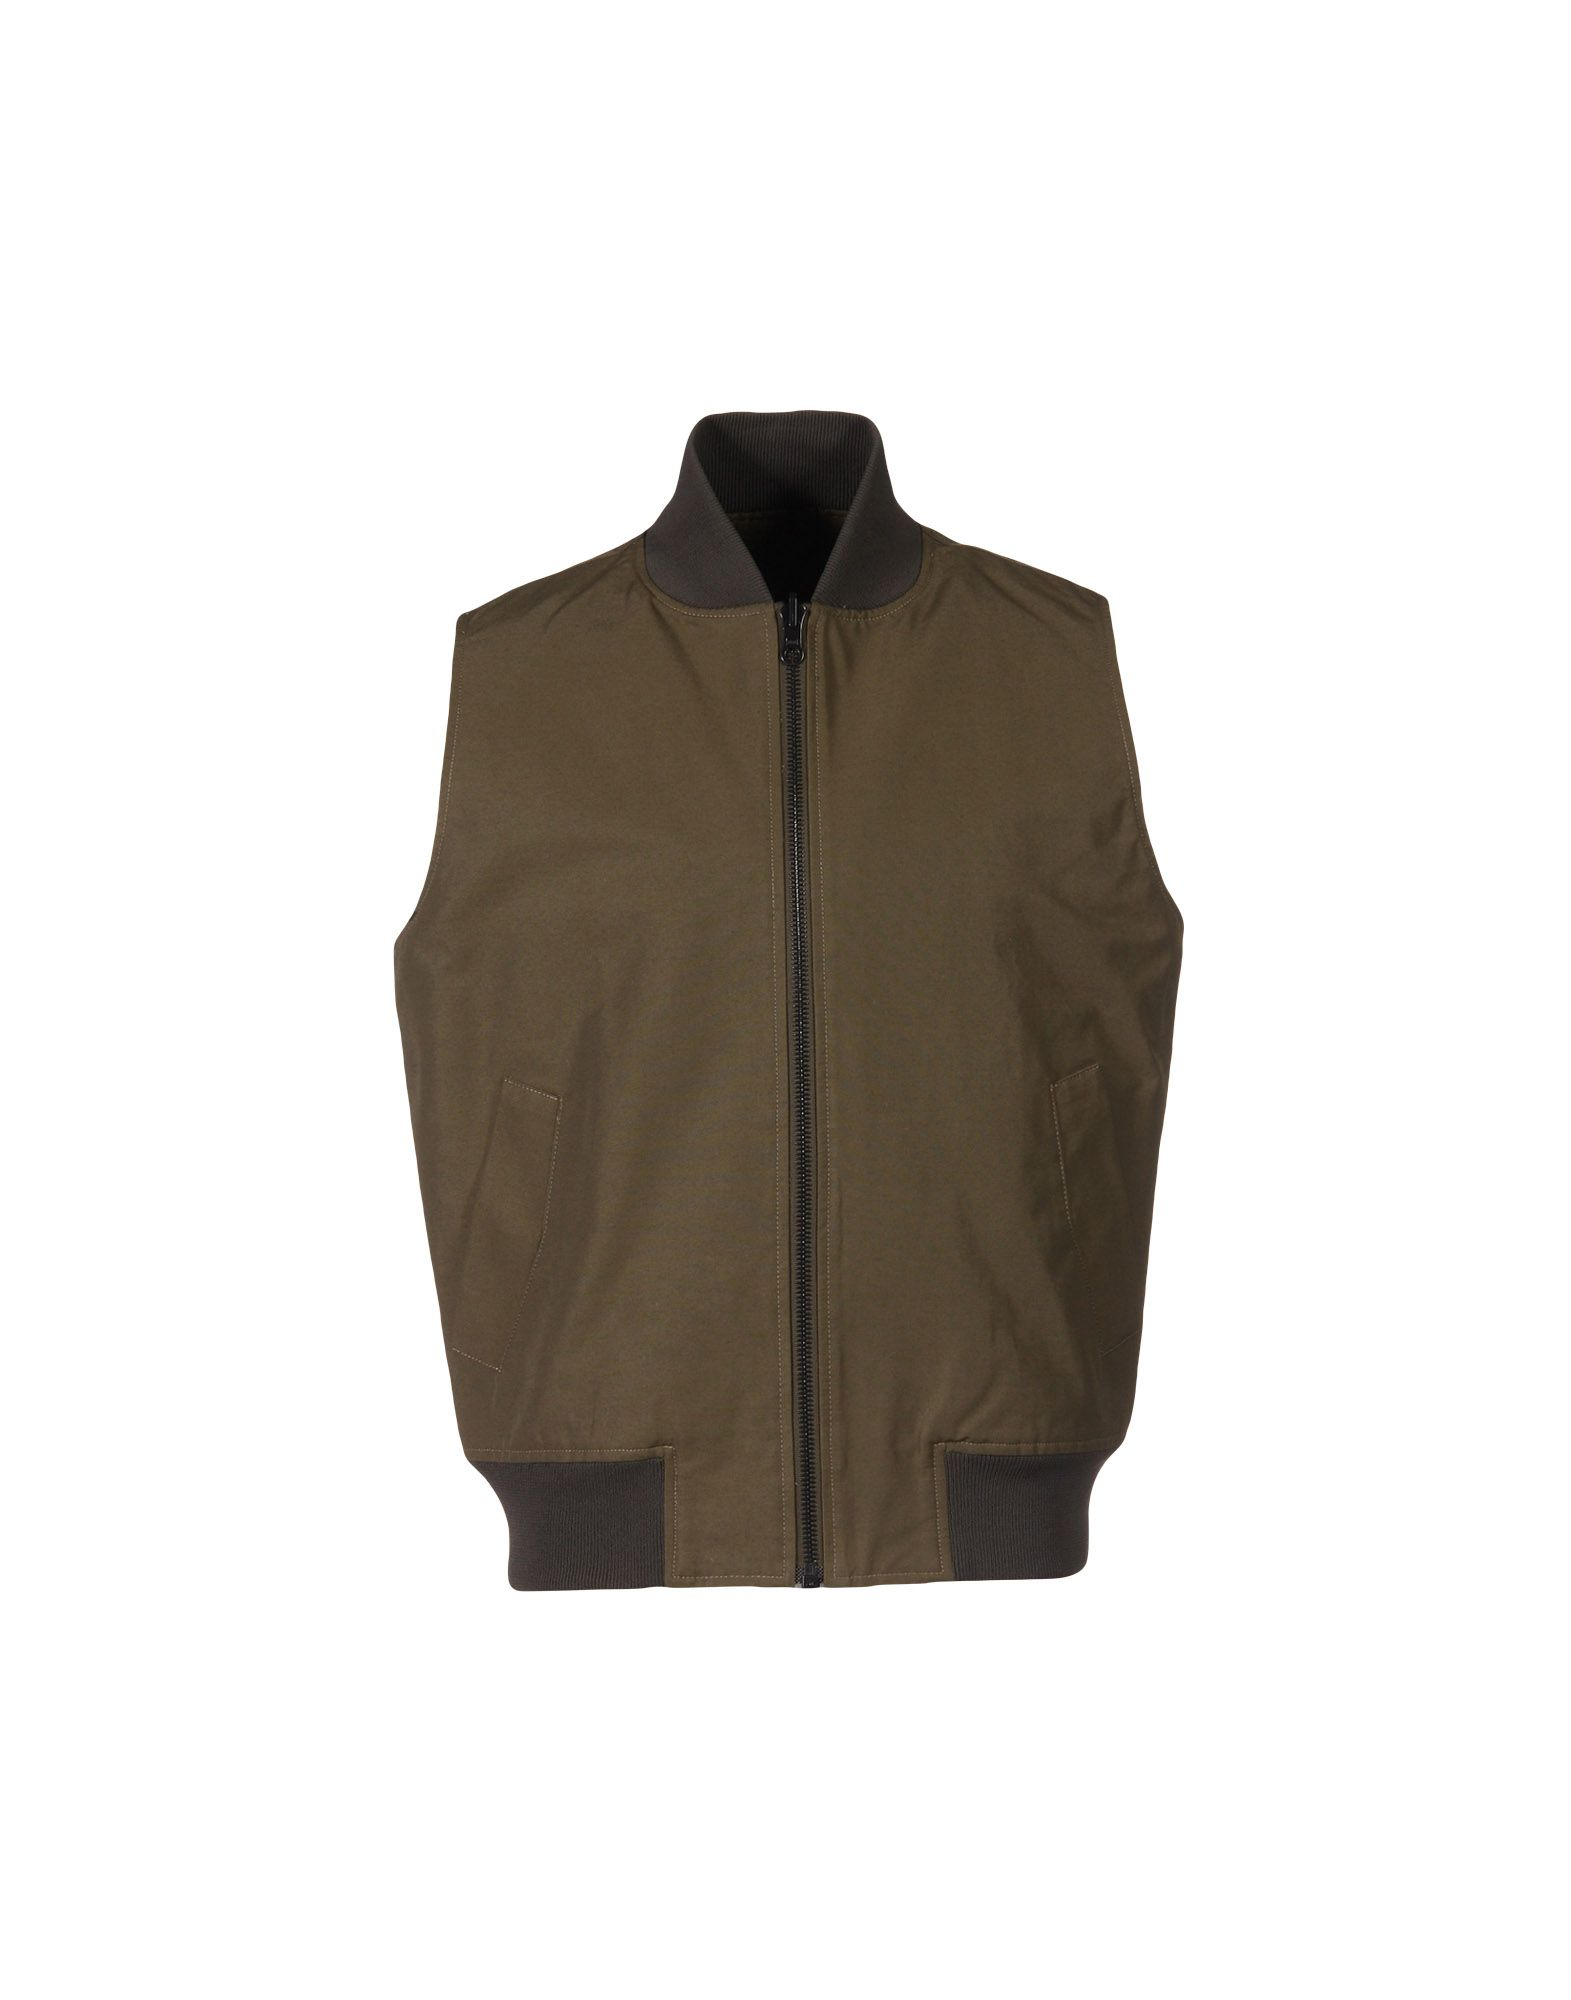 CADET Jackets in Military Green